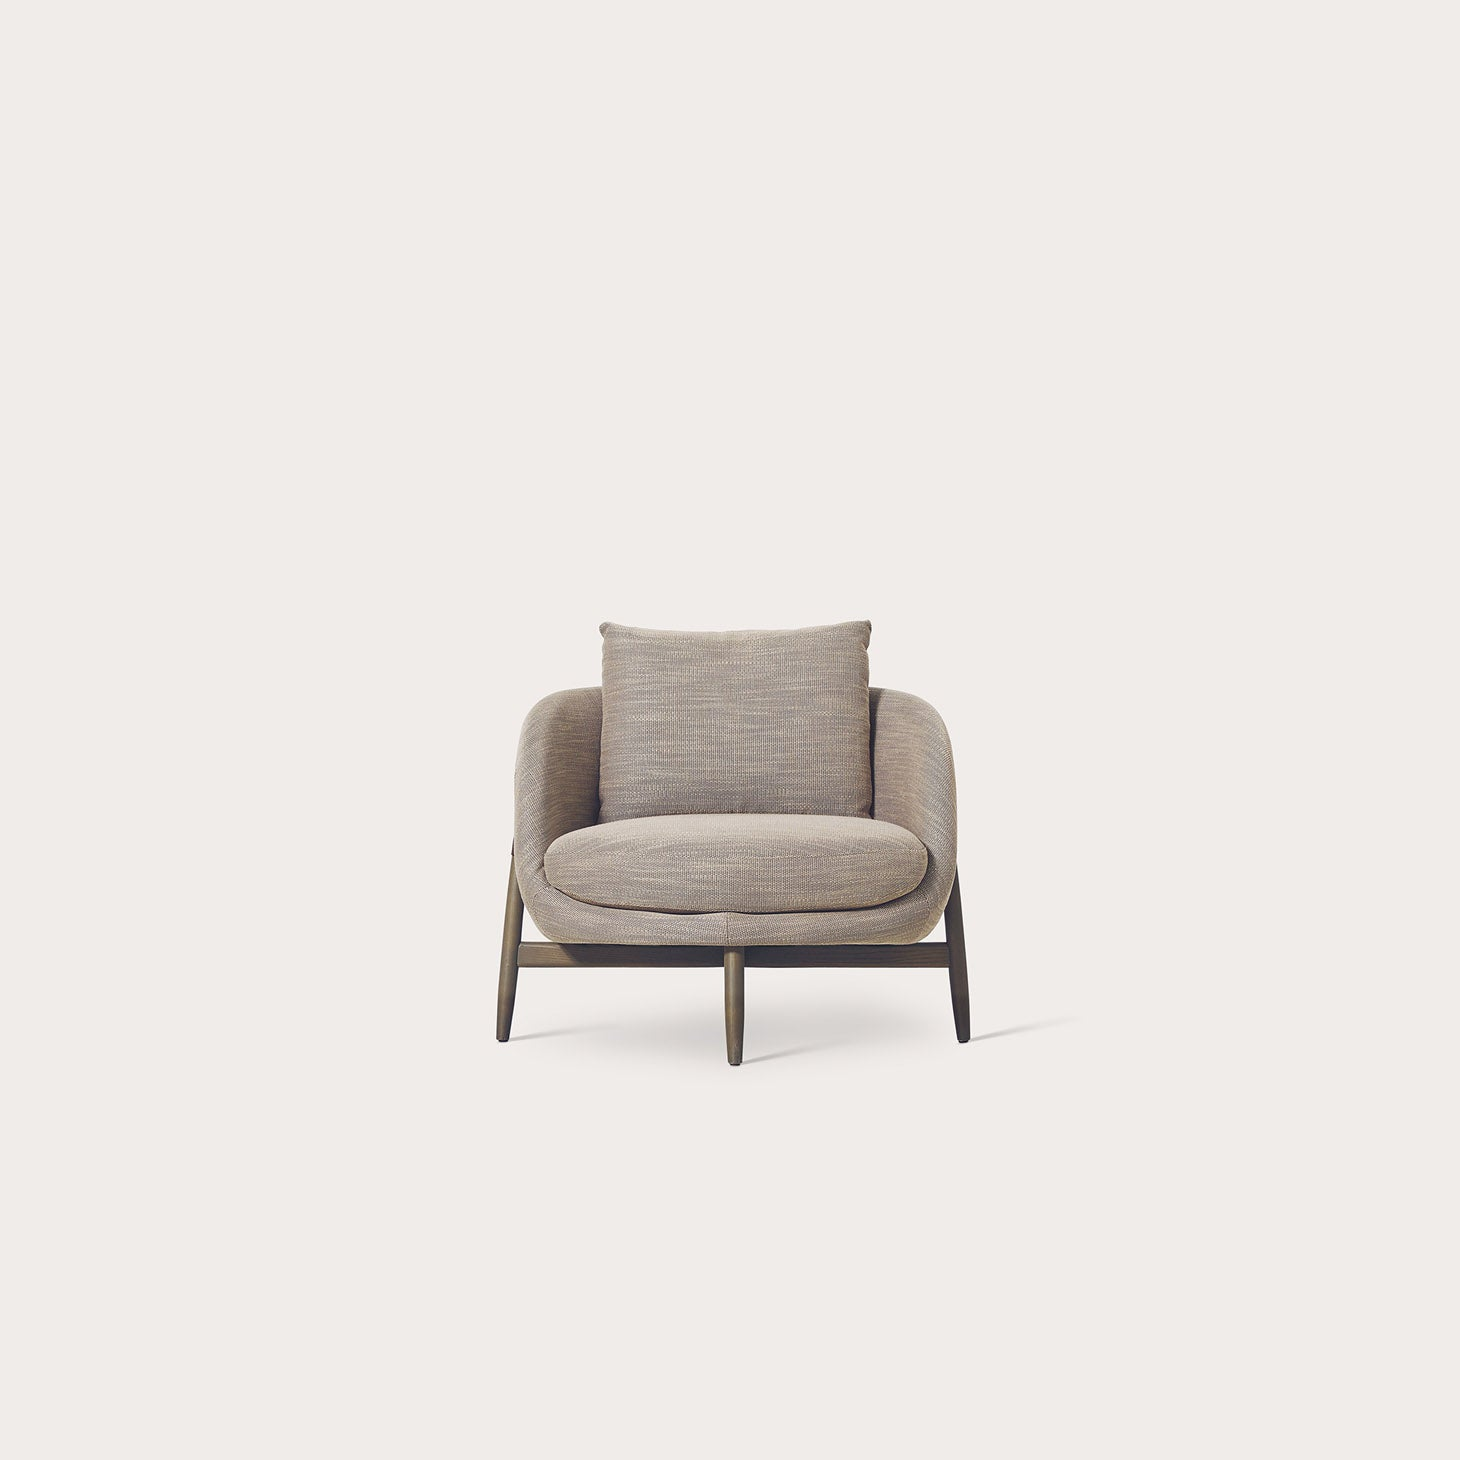 Heath Seating Yabu Pushelberg Designer Furniture Sku: 247-240-10304